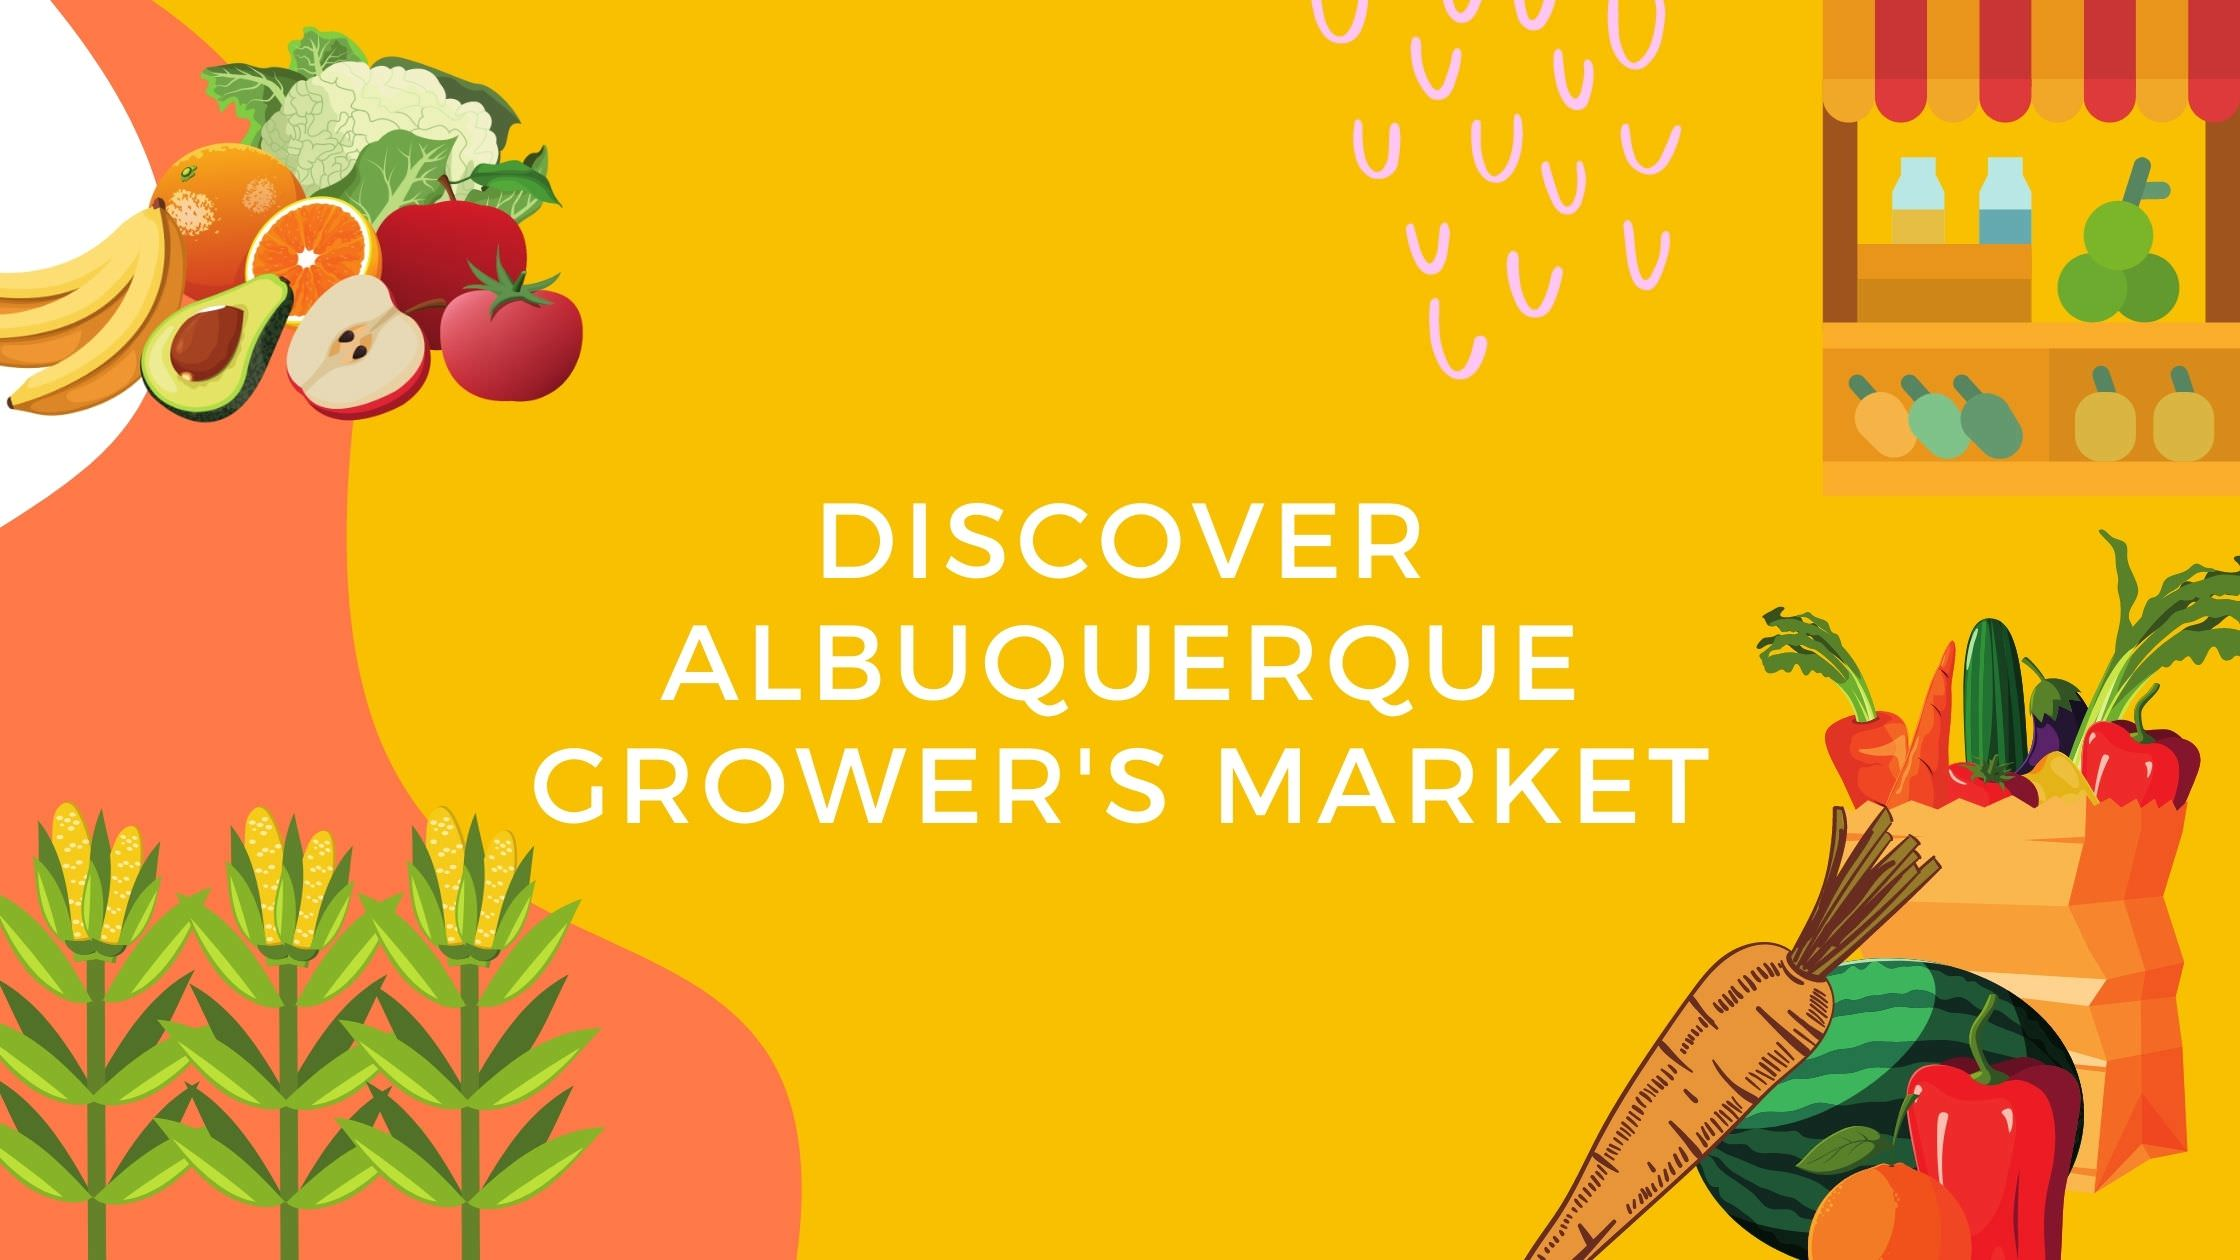 Discover Albuquerque Grower's Market